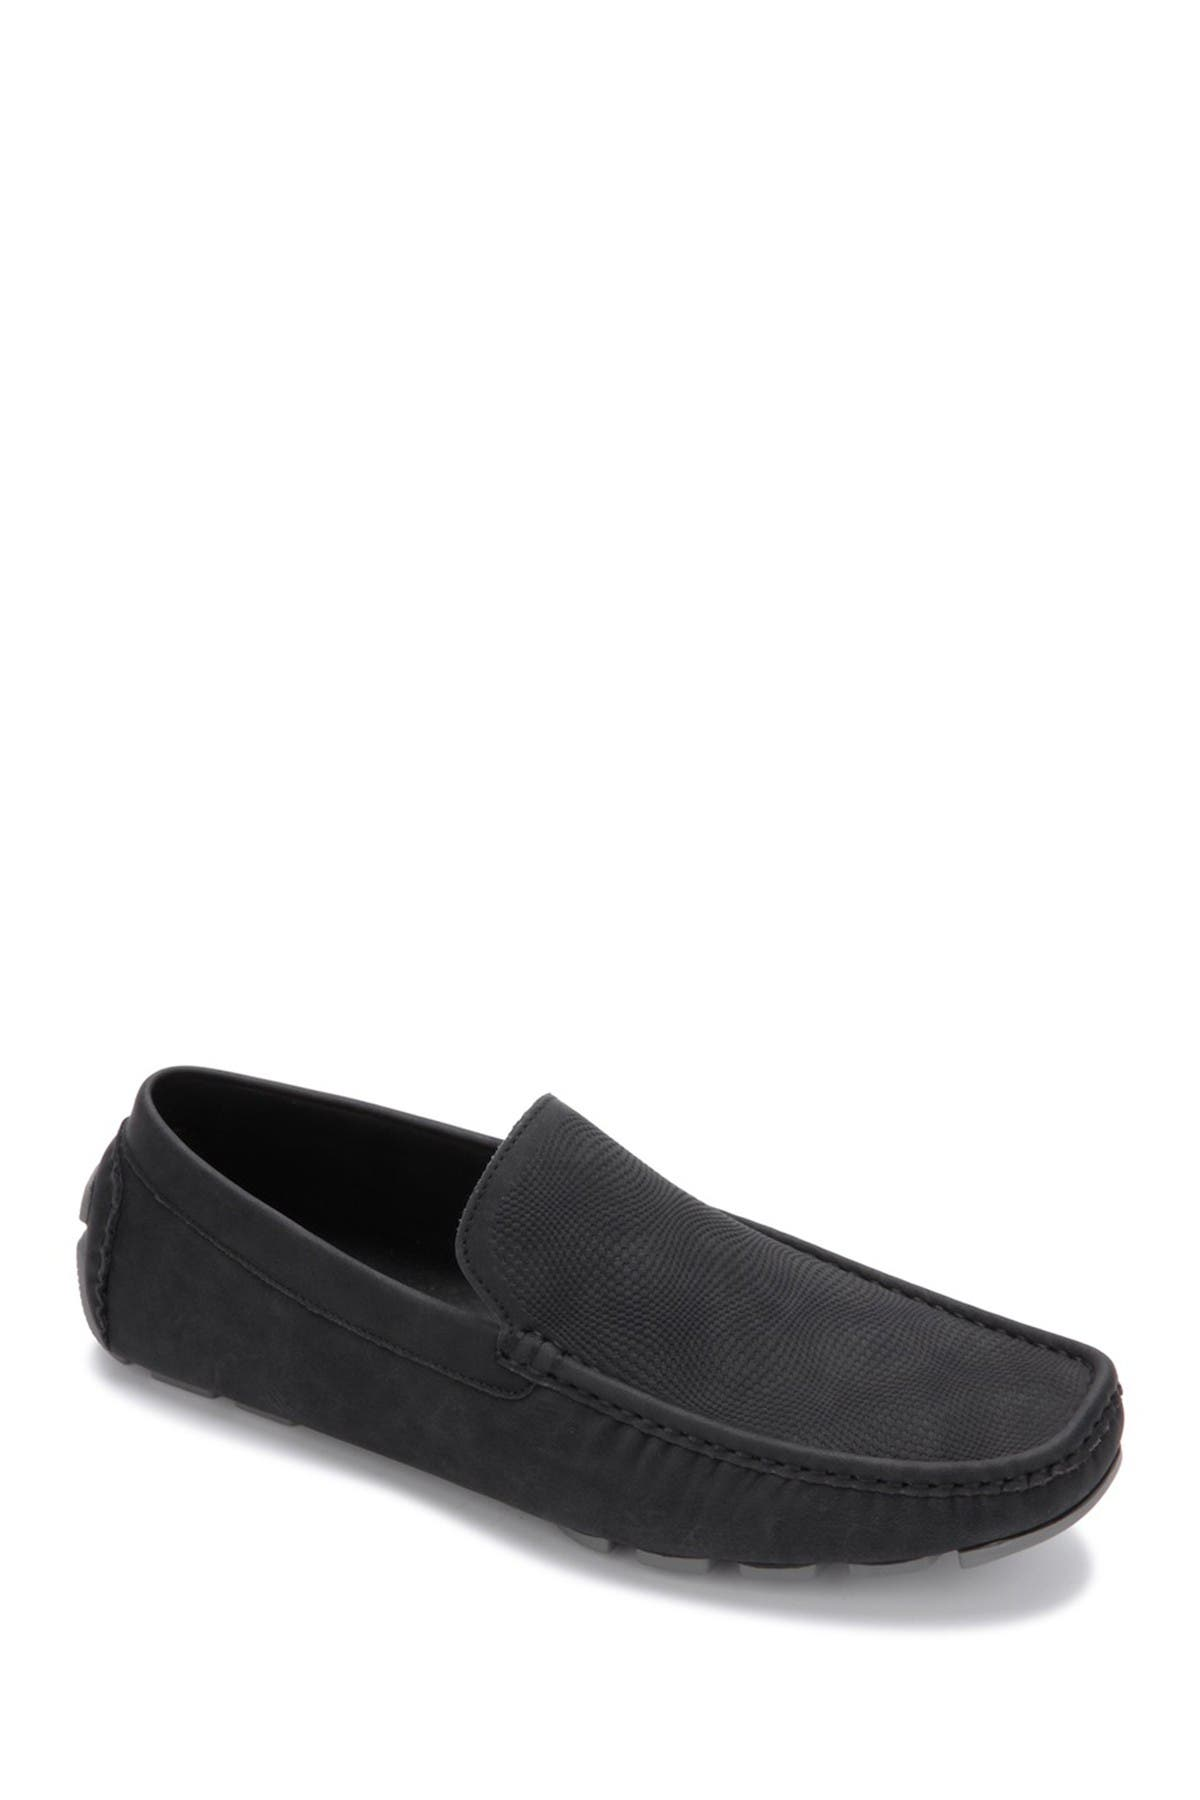 Image of Kenneth Cole Reaction Hope Embossed Moc Toe Driver